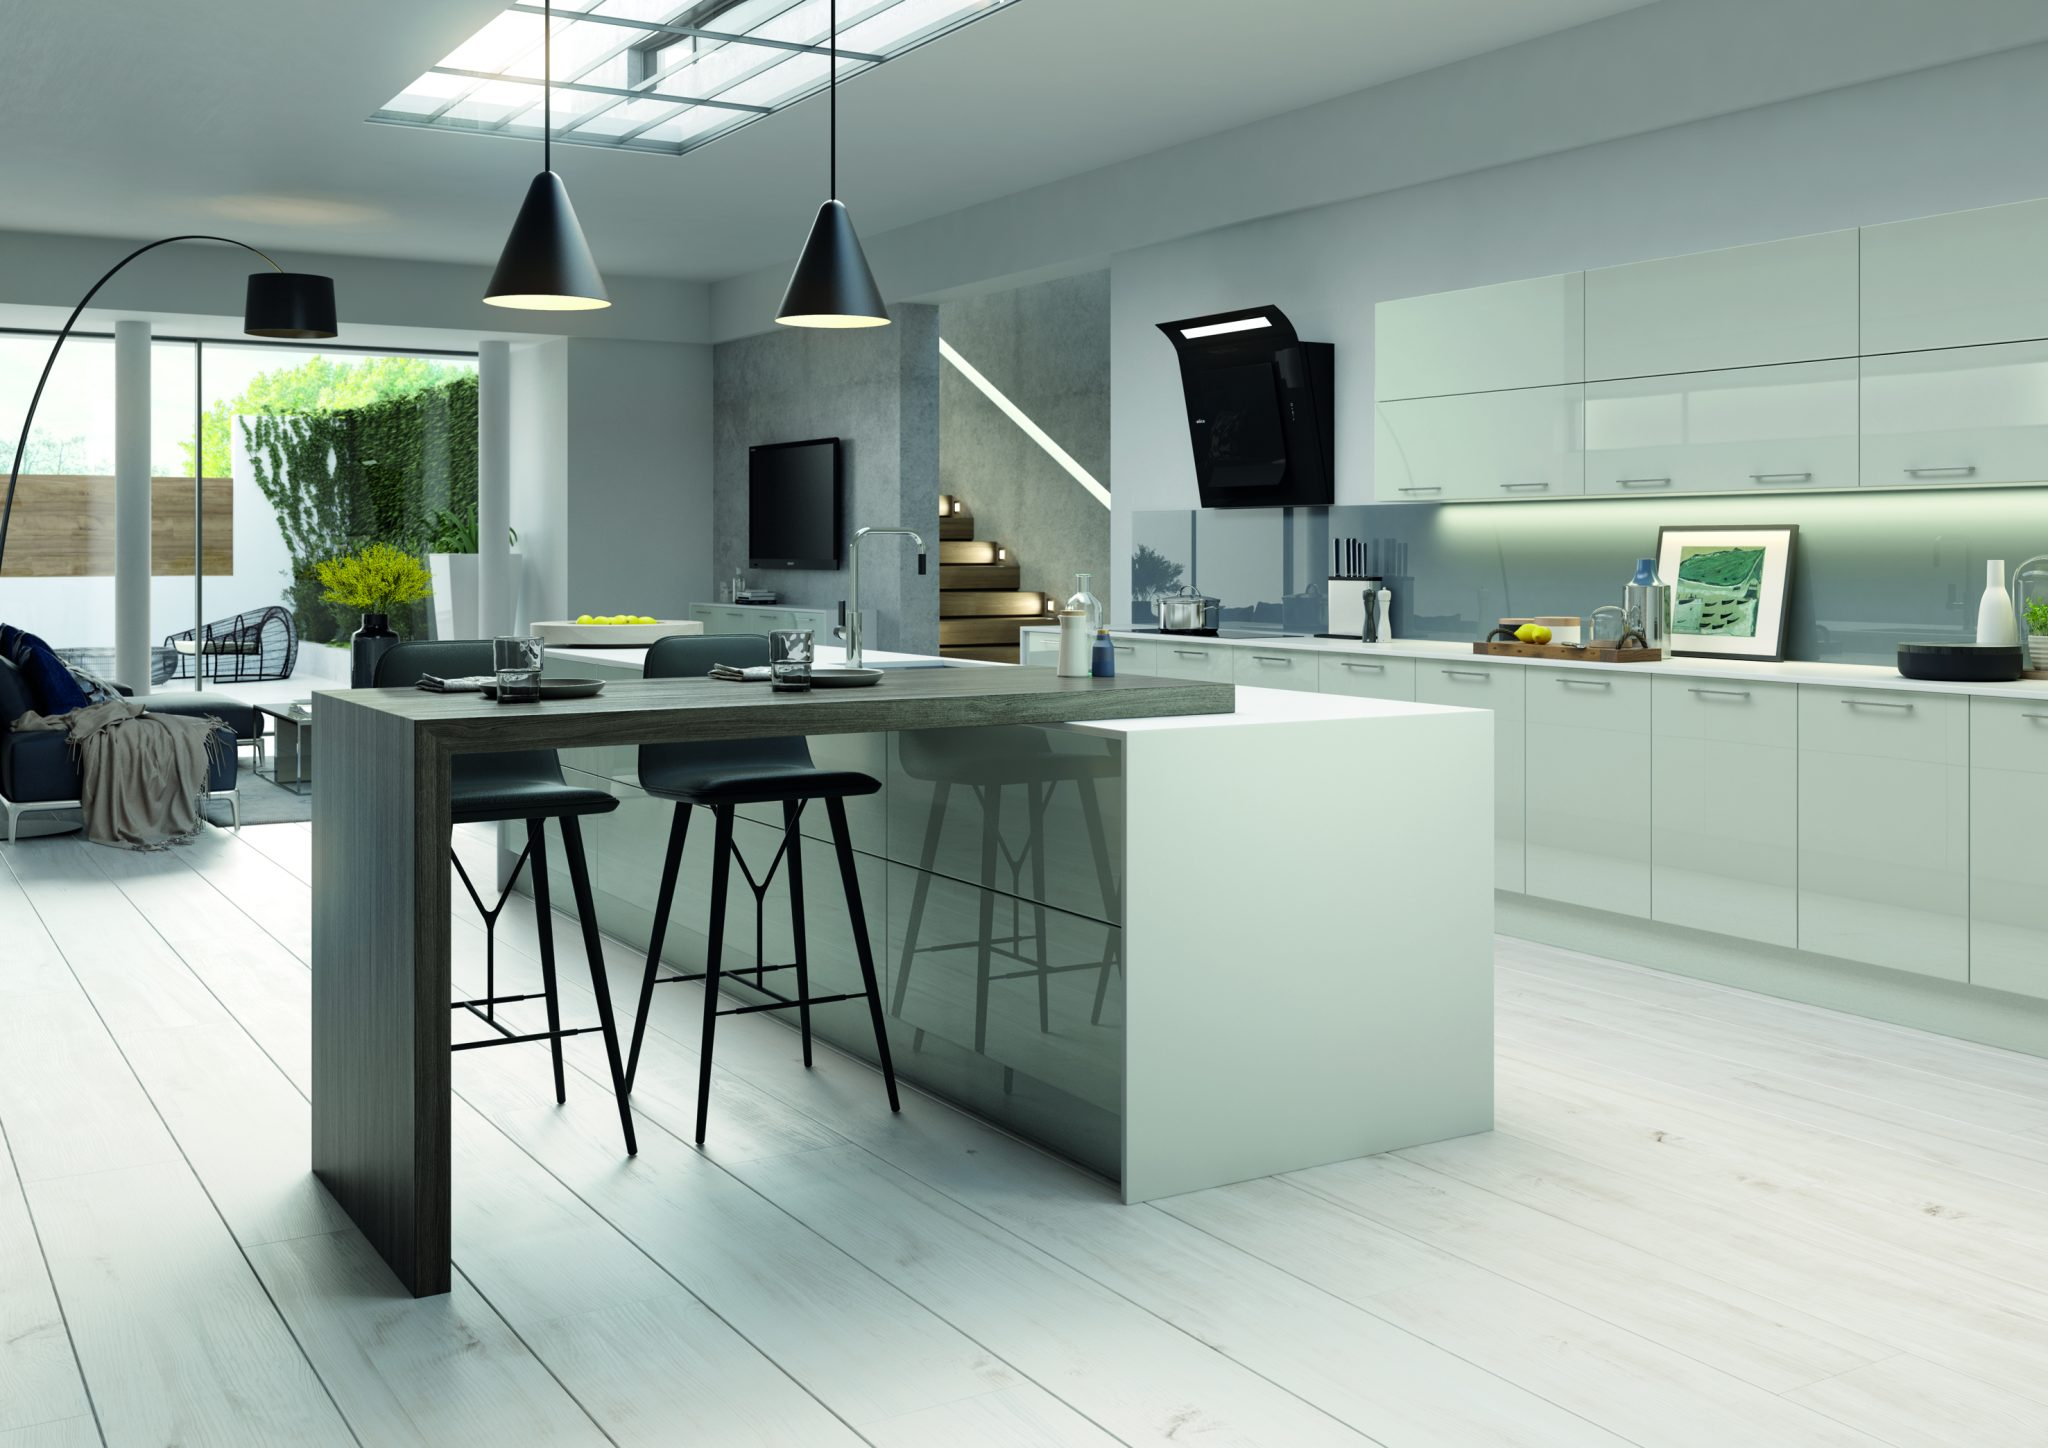 Modern Kitchens - MLS Kitchens